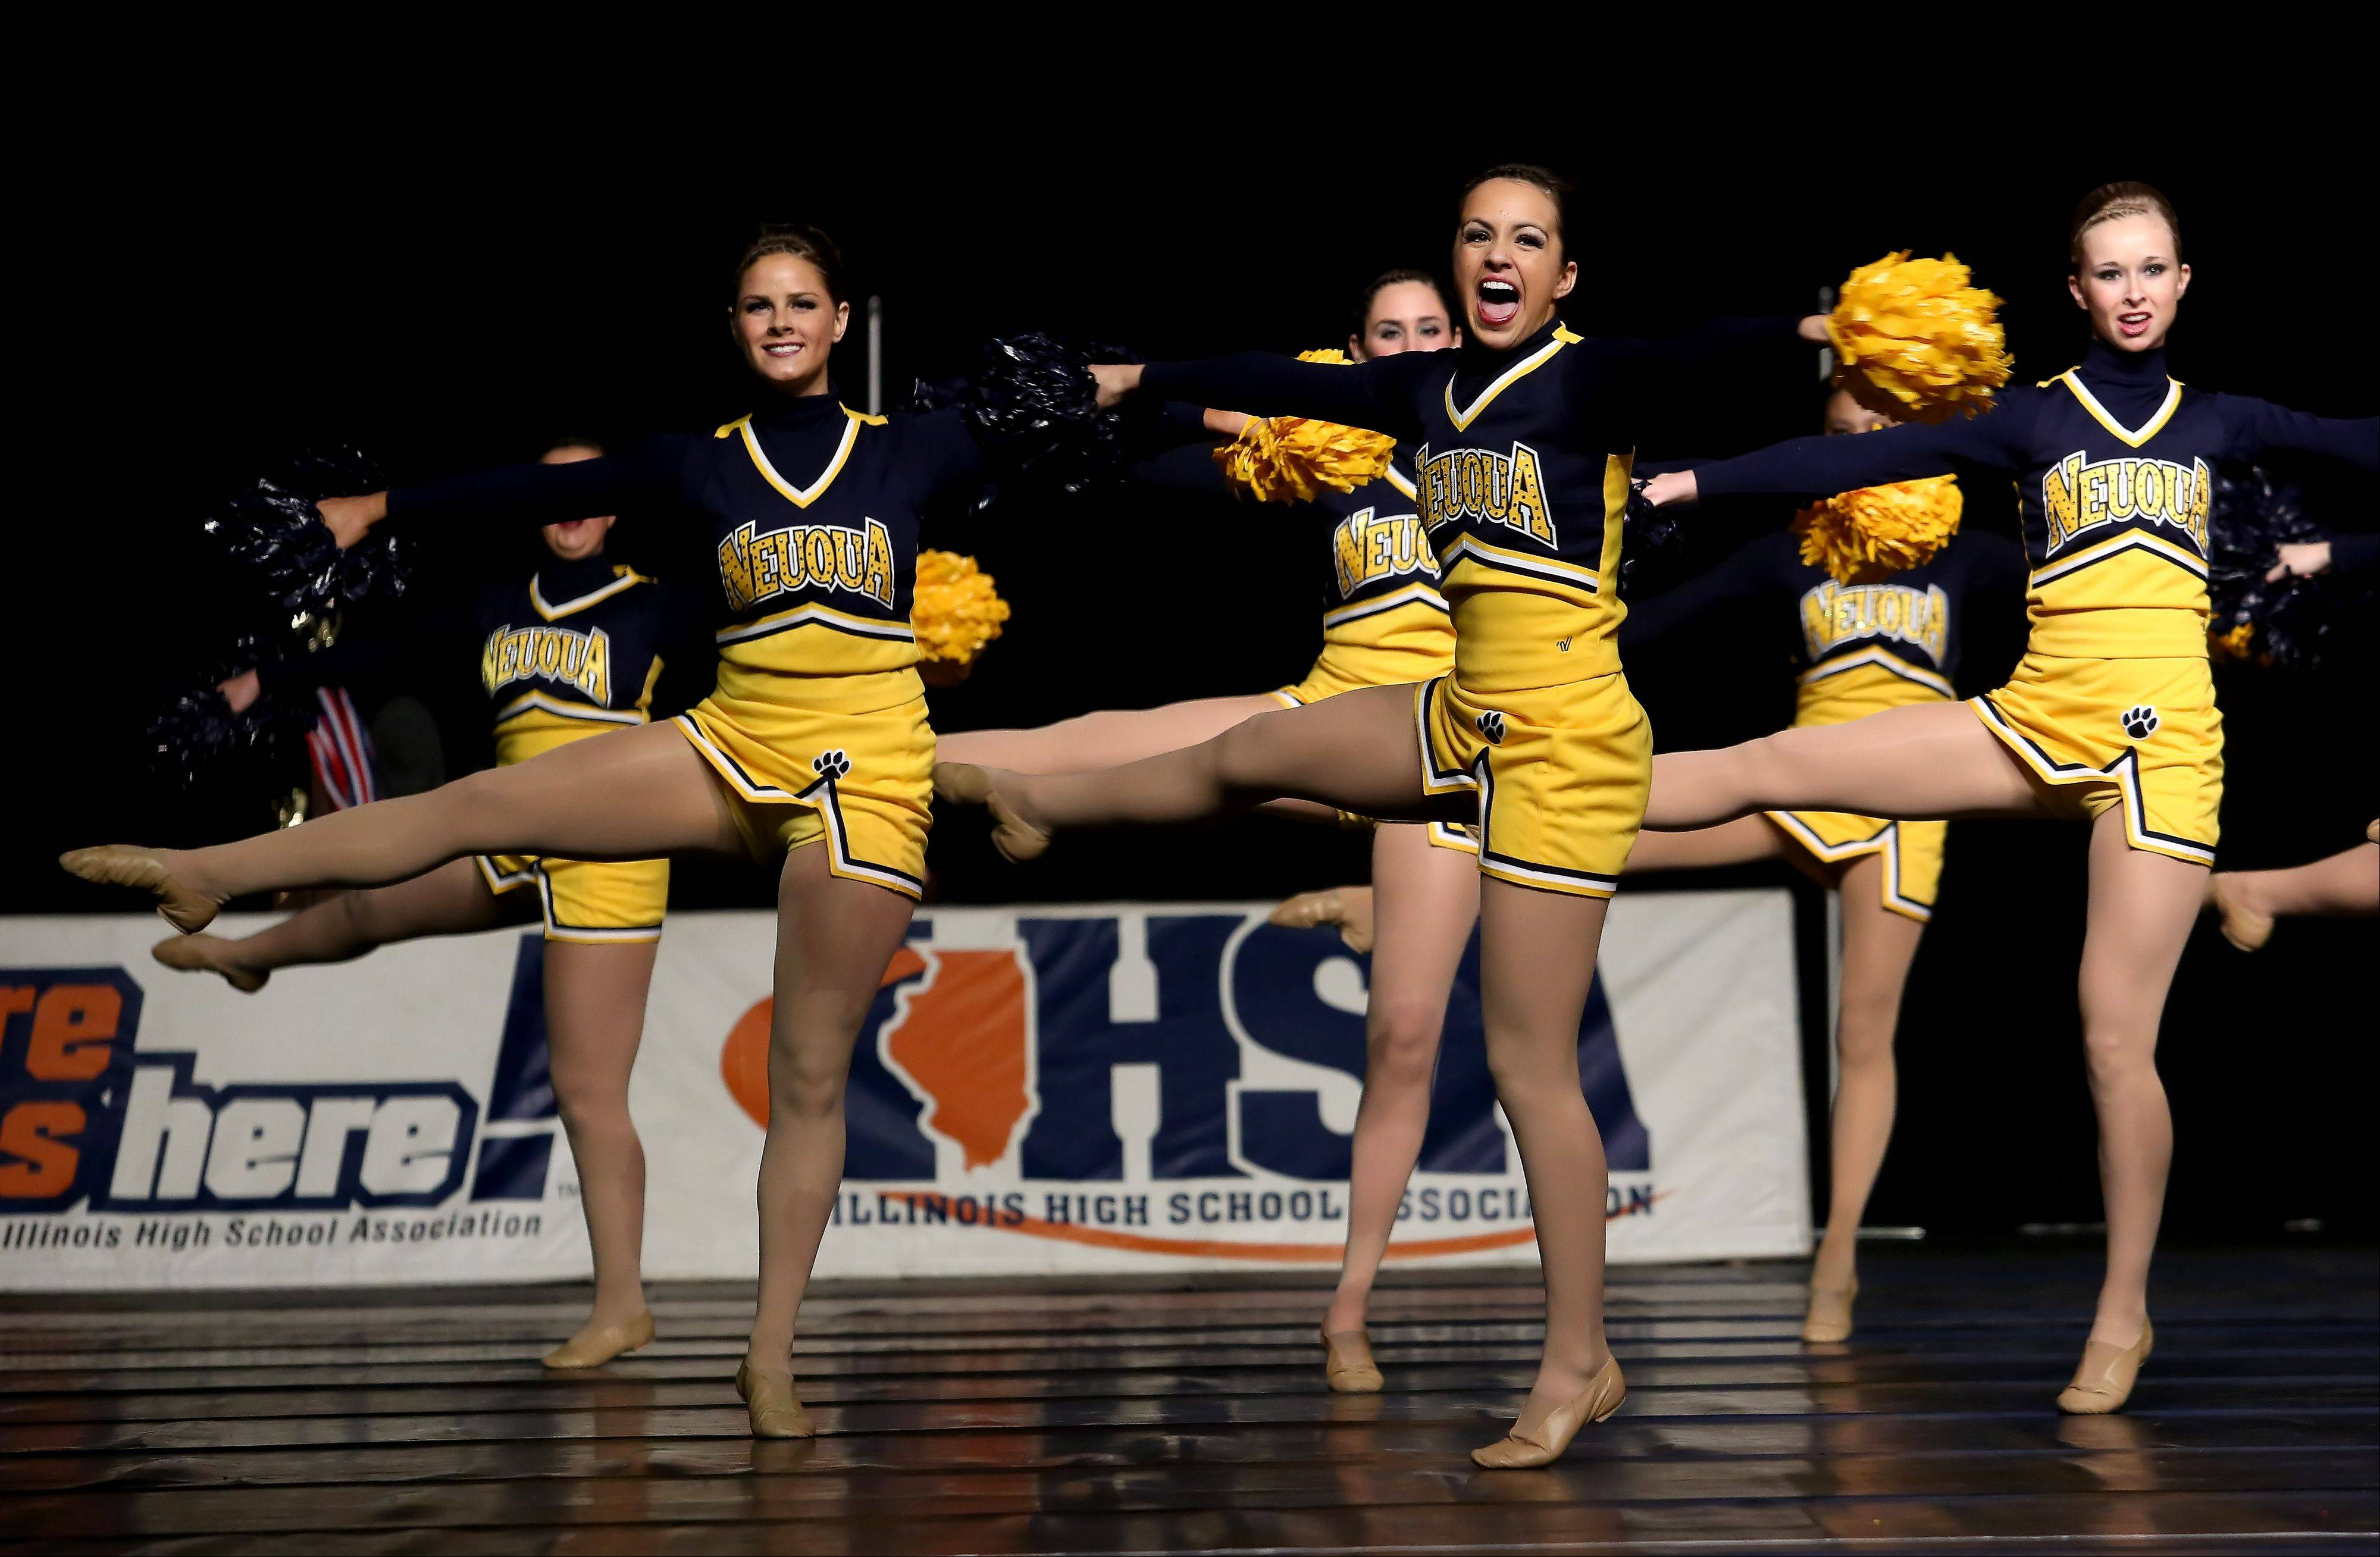 Neuqua Valley High School takes the floor in the state dance preliminaries on Friday in Bloomington. Neuqua advanced to the Division 3A finals.